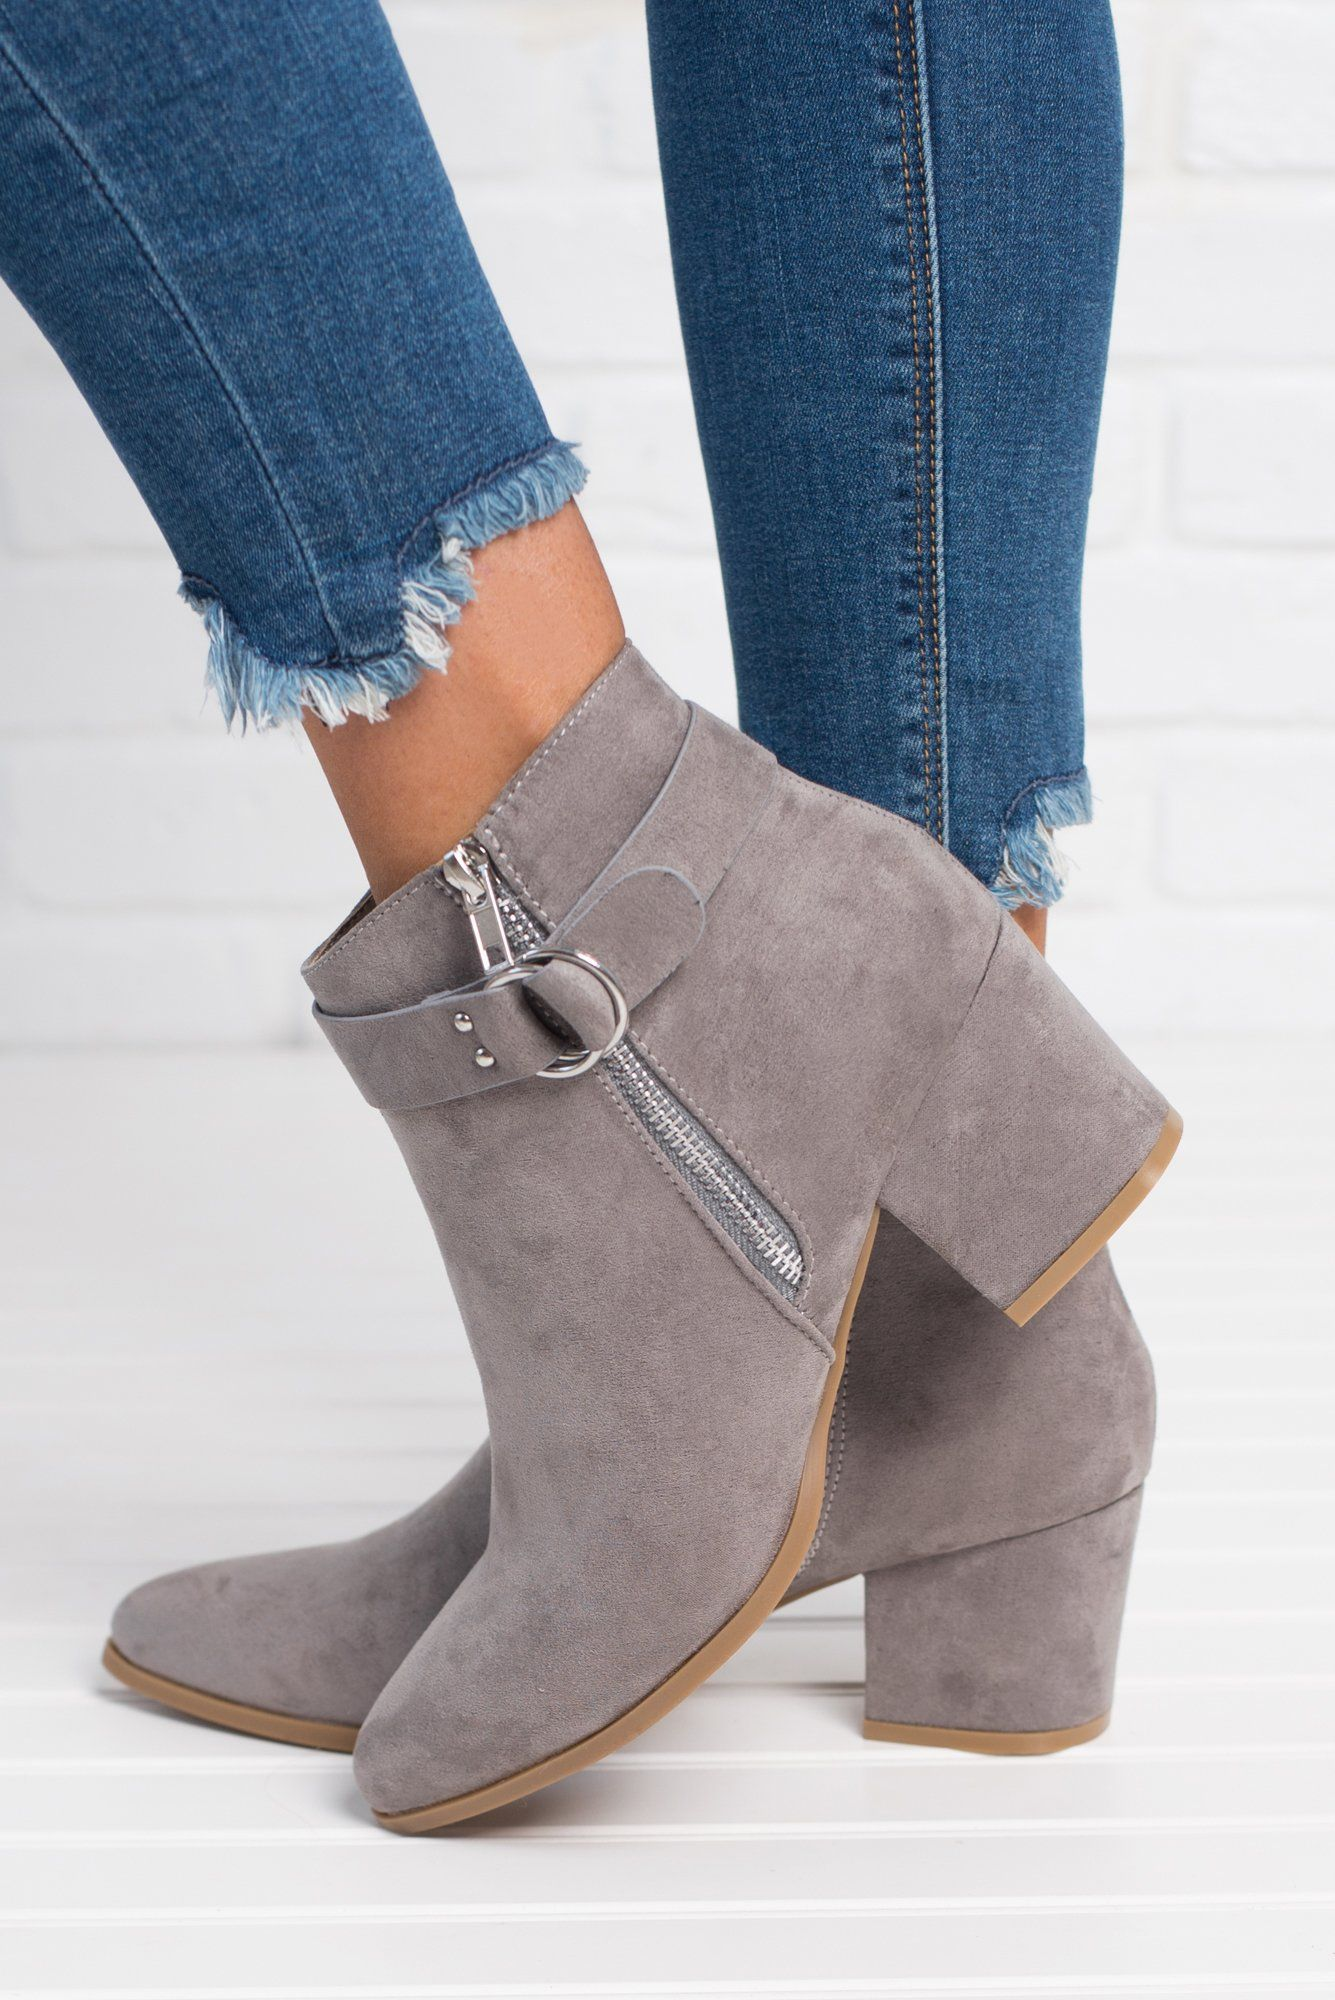 Pin by Niah Mays on Shoes | Fresh shoes, Shoes, Shoe boots